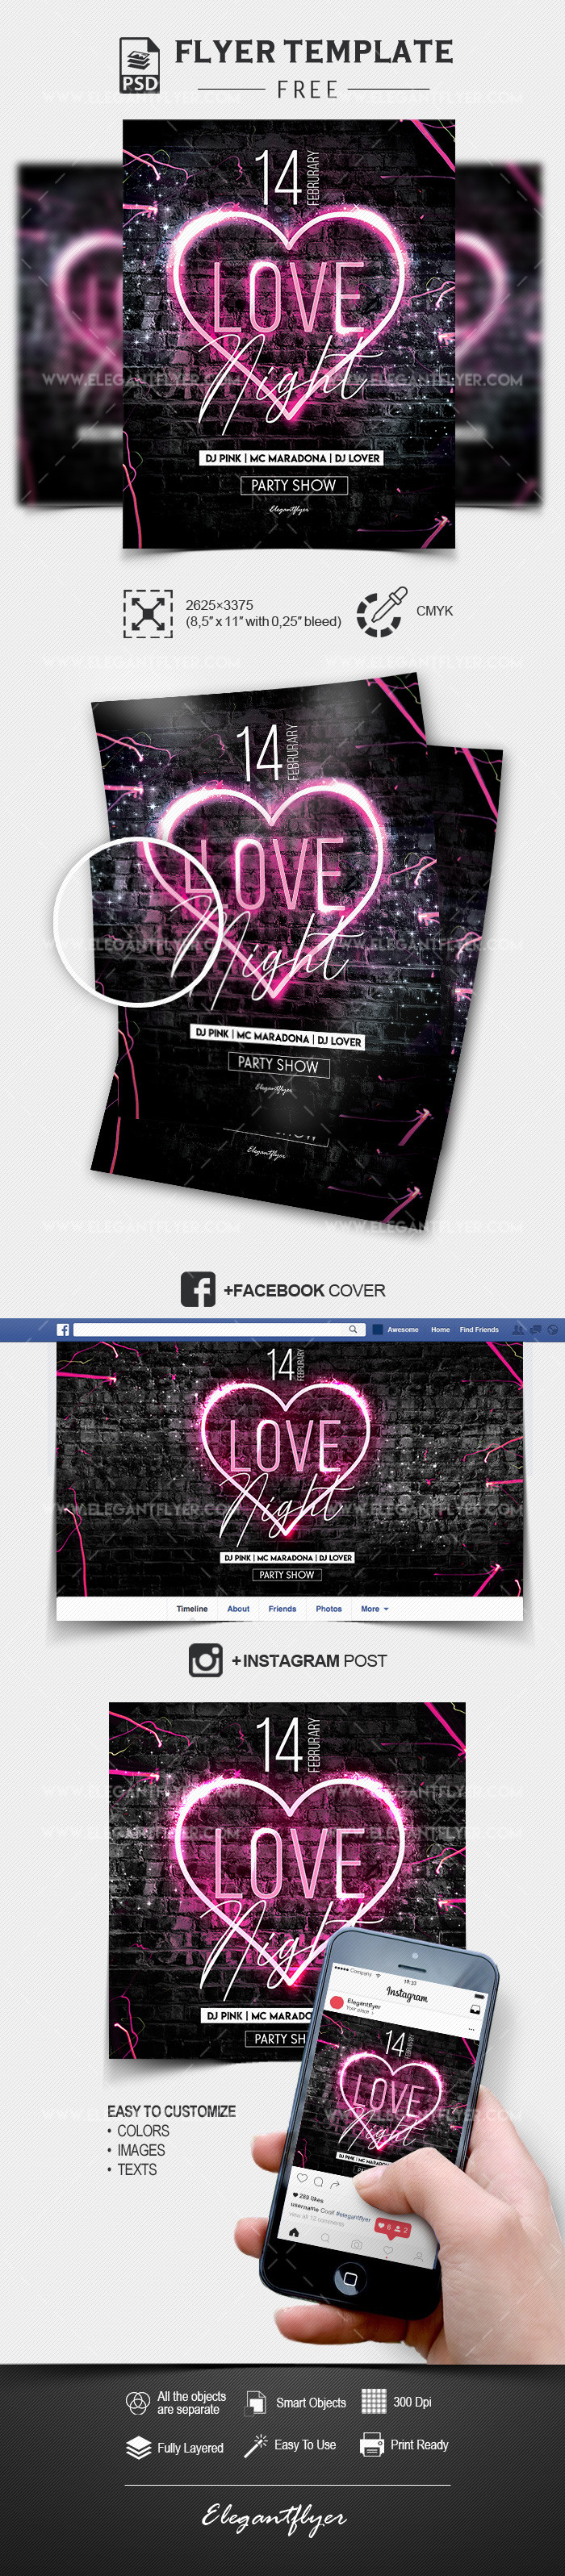 Love Night – Free Flyer Template PSD + Facebook Cover + Instagram Post